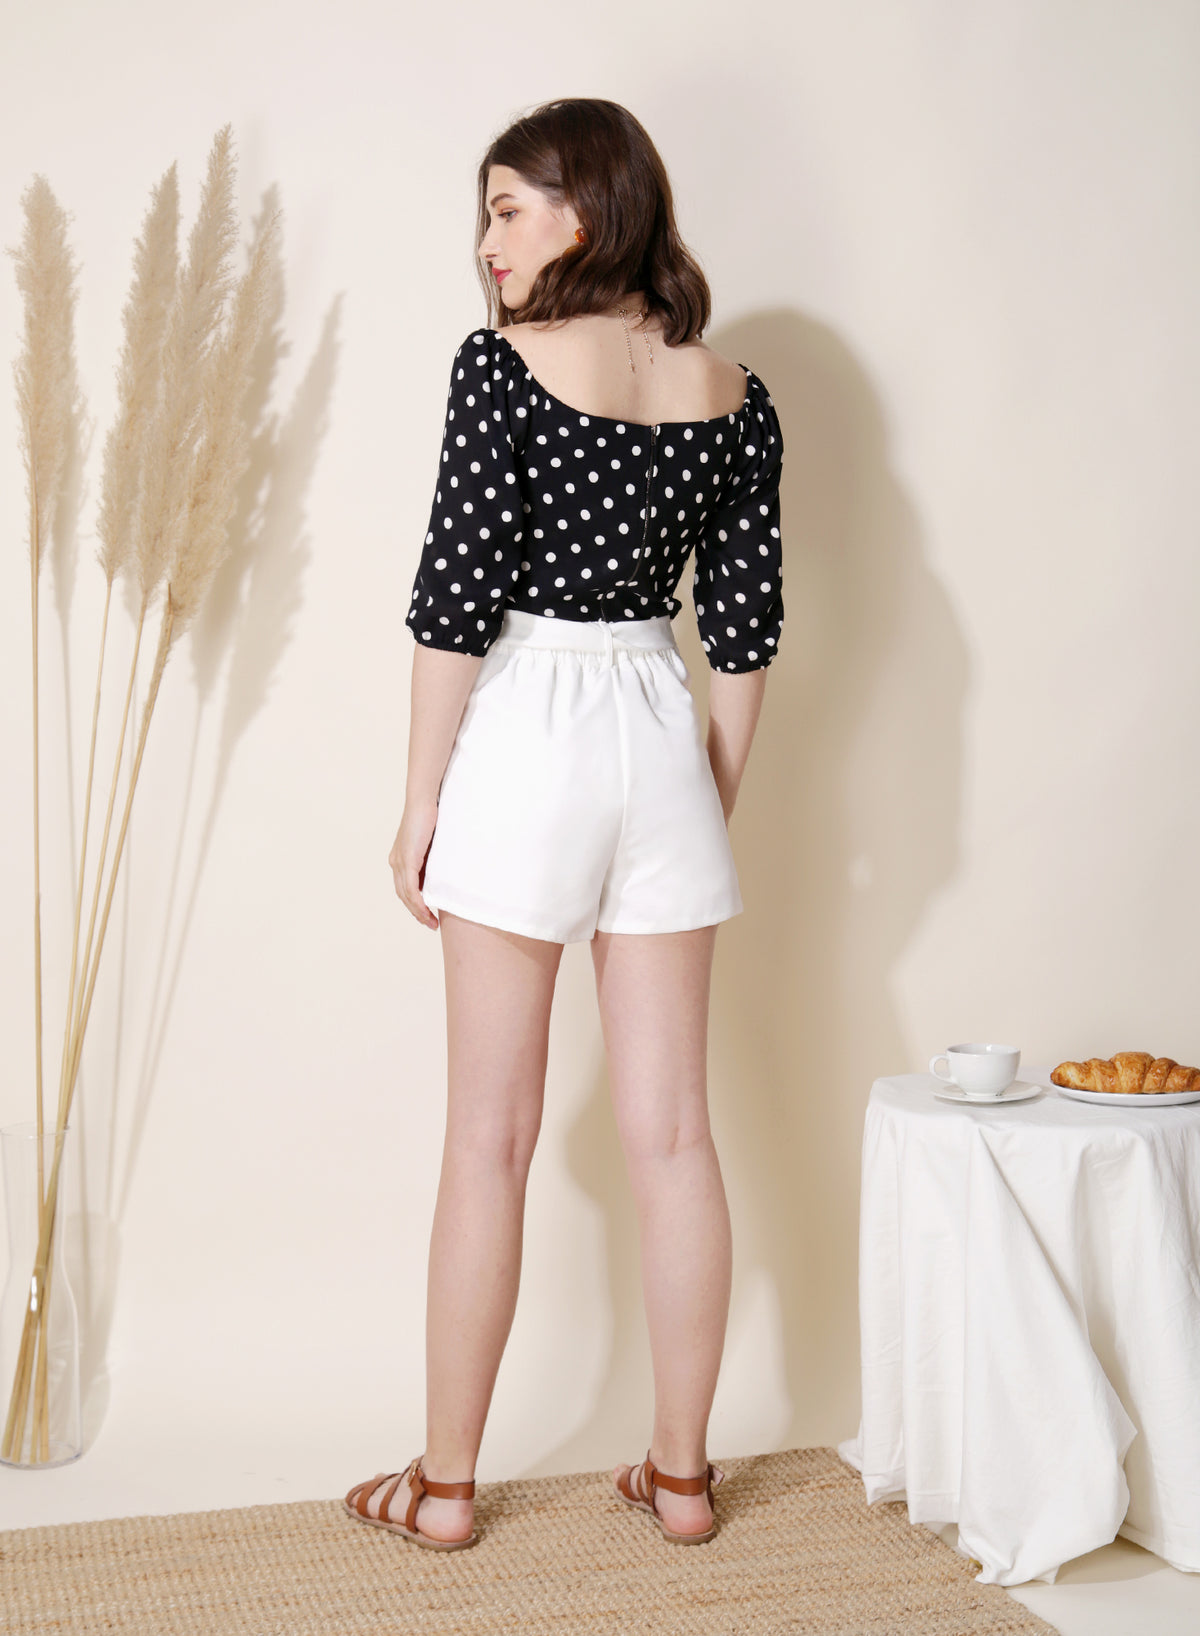 Amour Polka Dot Wrap Top (Black) at $ 35.50 only sold at And Well Dressed Online Fashion Store Singapore